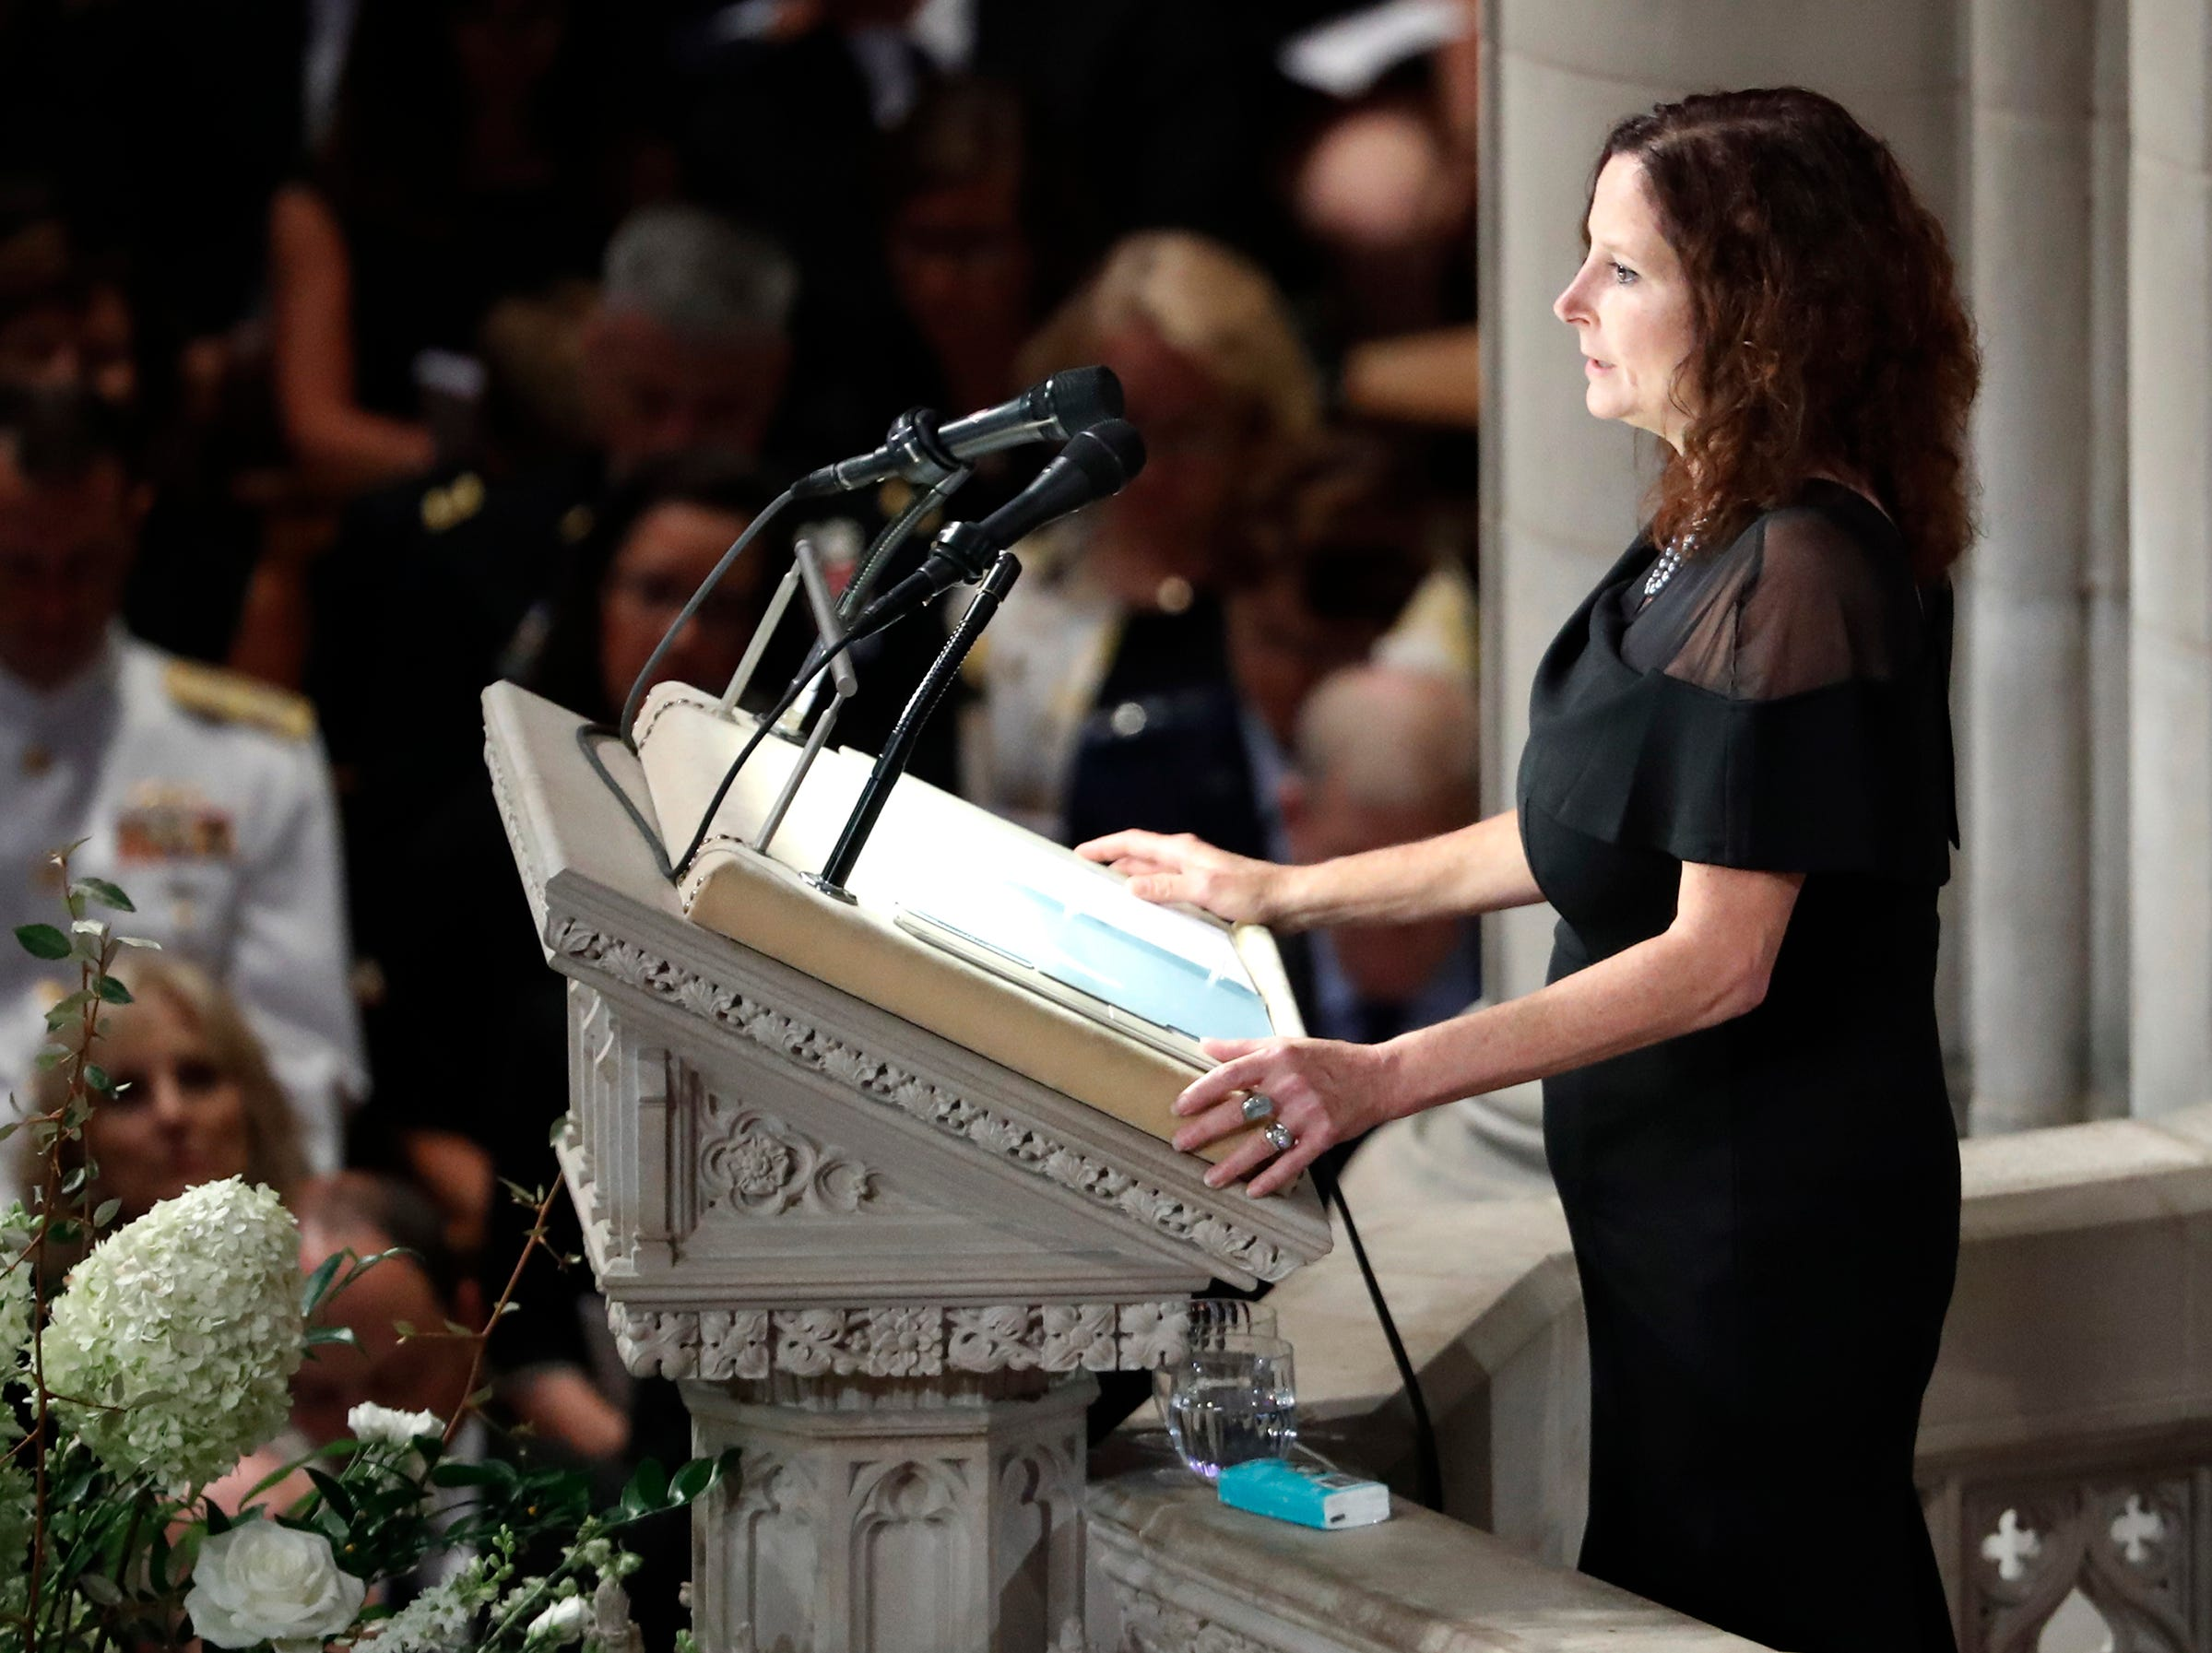 Sidney McCain reads scripture at a memorial service for her father, Sen. John McCain, R-Ariz., at Washington National Cathedral.